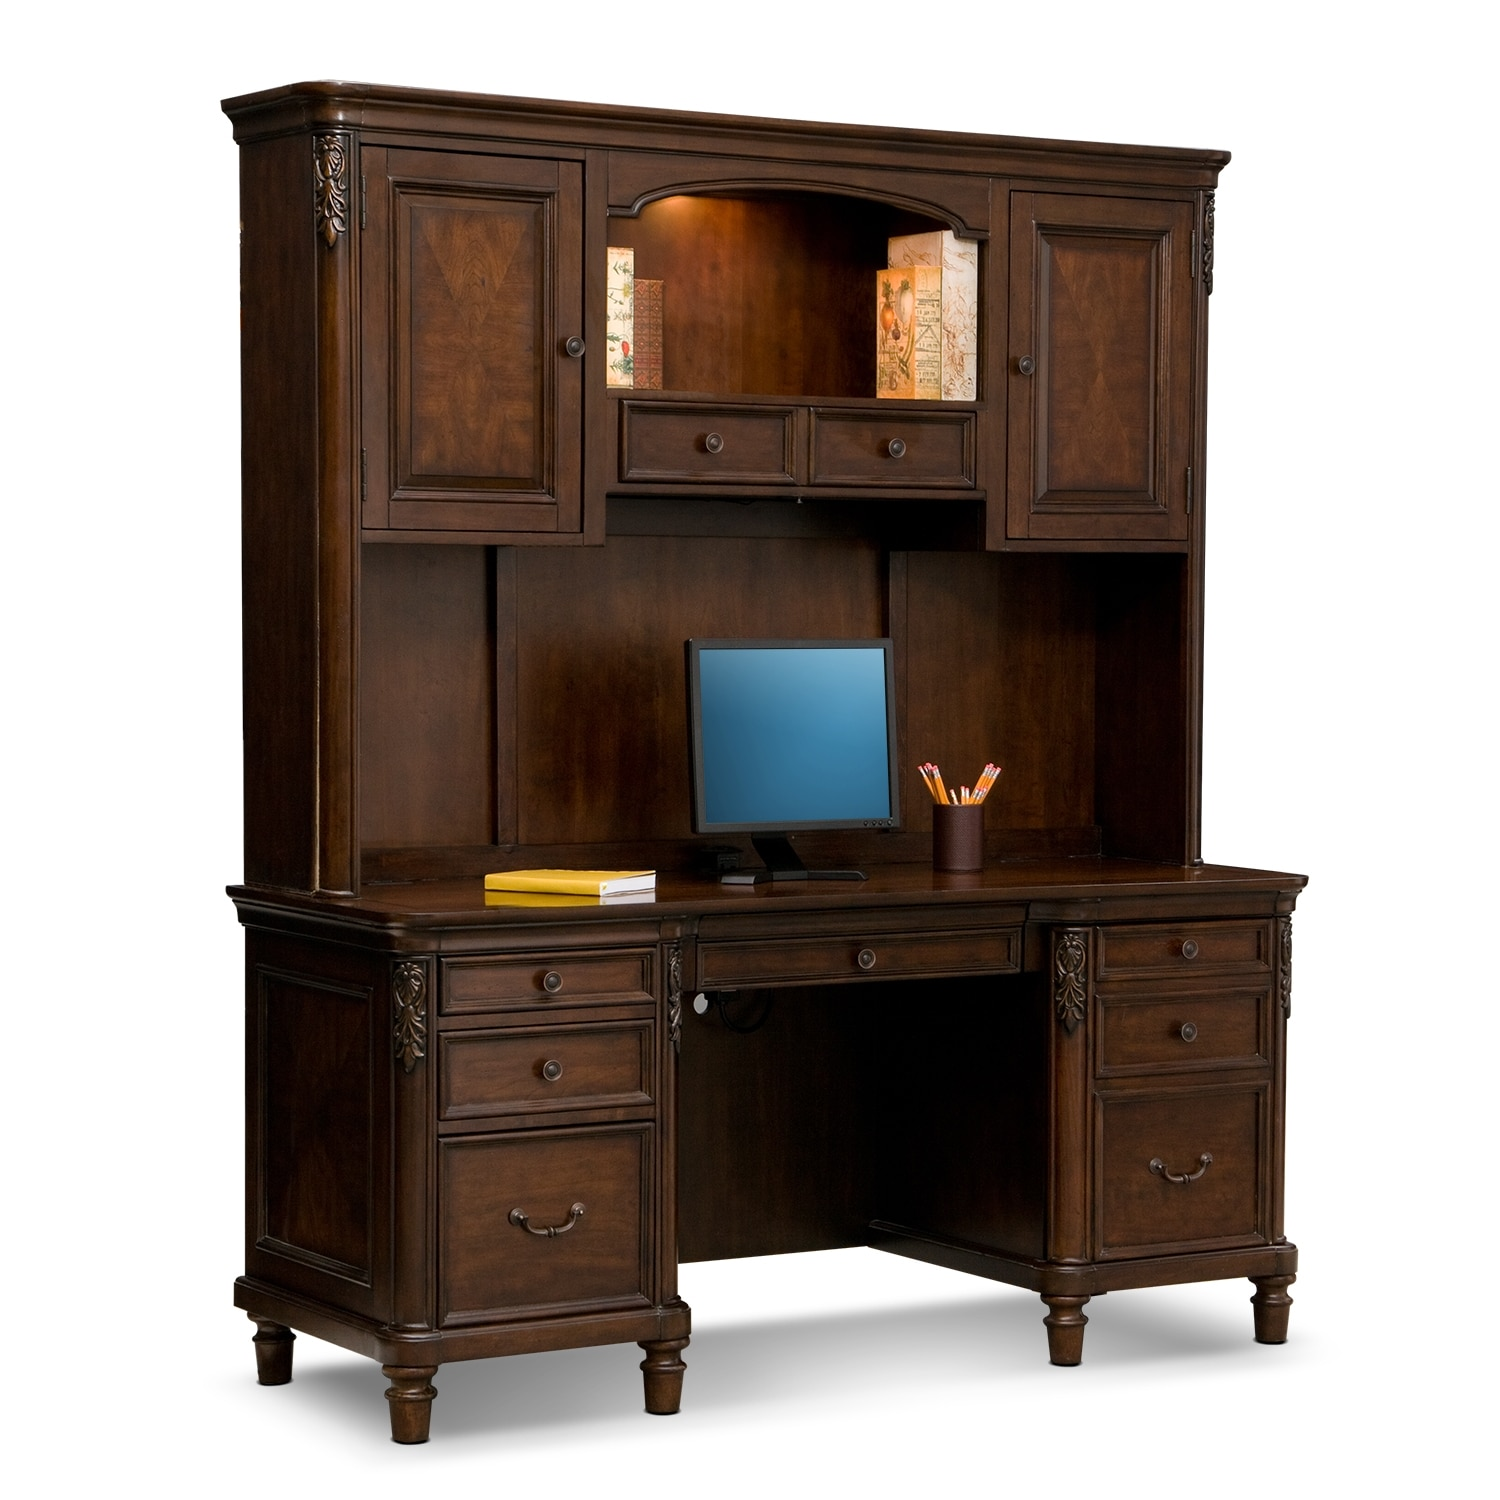 Hutch With Credenza on workstation with hutch, console with hutch, sofa table with hutch, chest of drawers with hutch, coat rack with hutch, pedestal desk with hutch, secretary desk with hutch, pie safe with hutch, office with hutch, wine rack with hutch, side table with hutch, home office credenza and hutch, cupboard with hutch, bathroom cabinet with hutch, book case with hutch, executive desk credenza hutch, credenza and hutch set, writing desk with hutch, microwave with hutch, credenza and hutch combo,